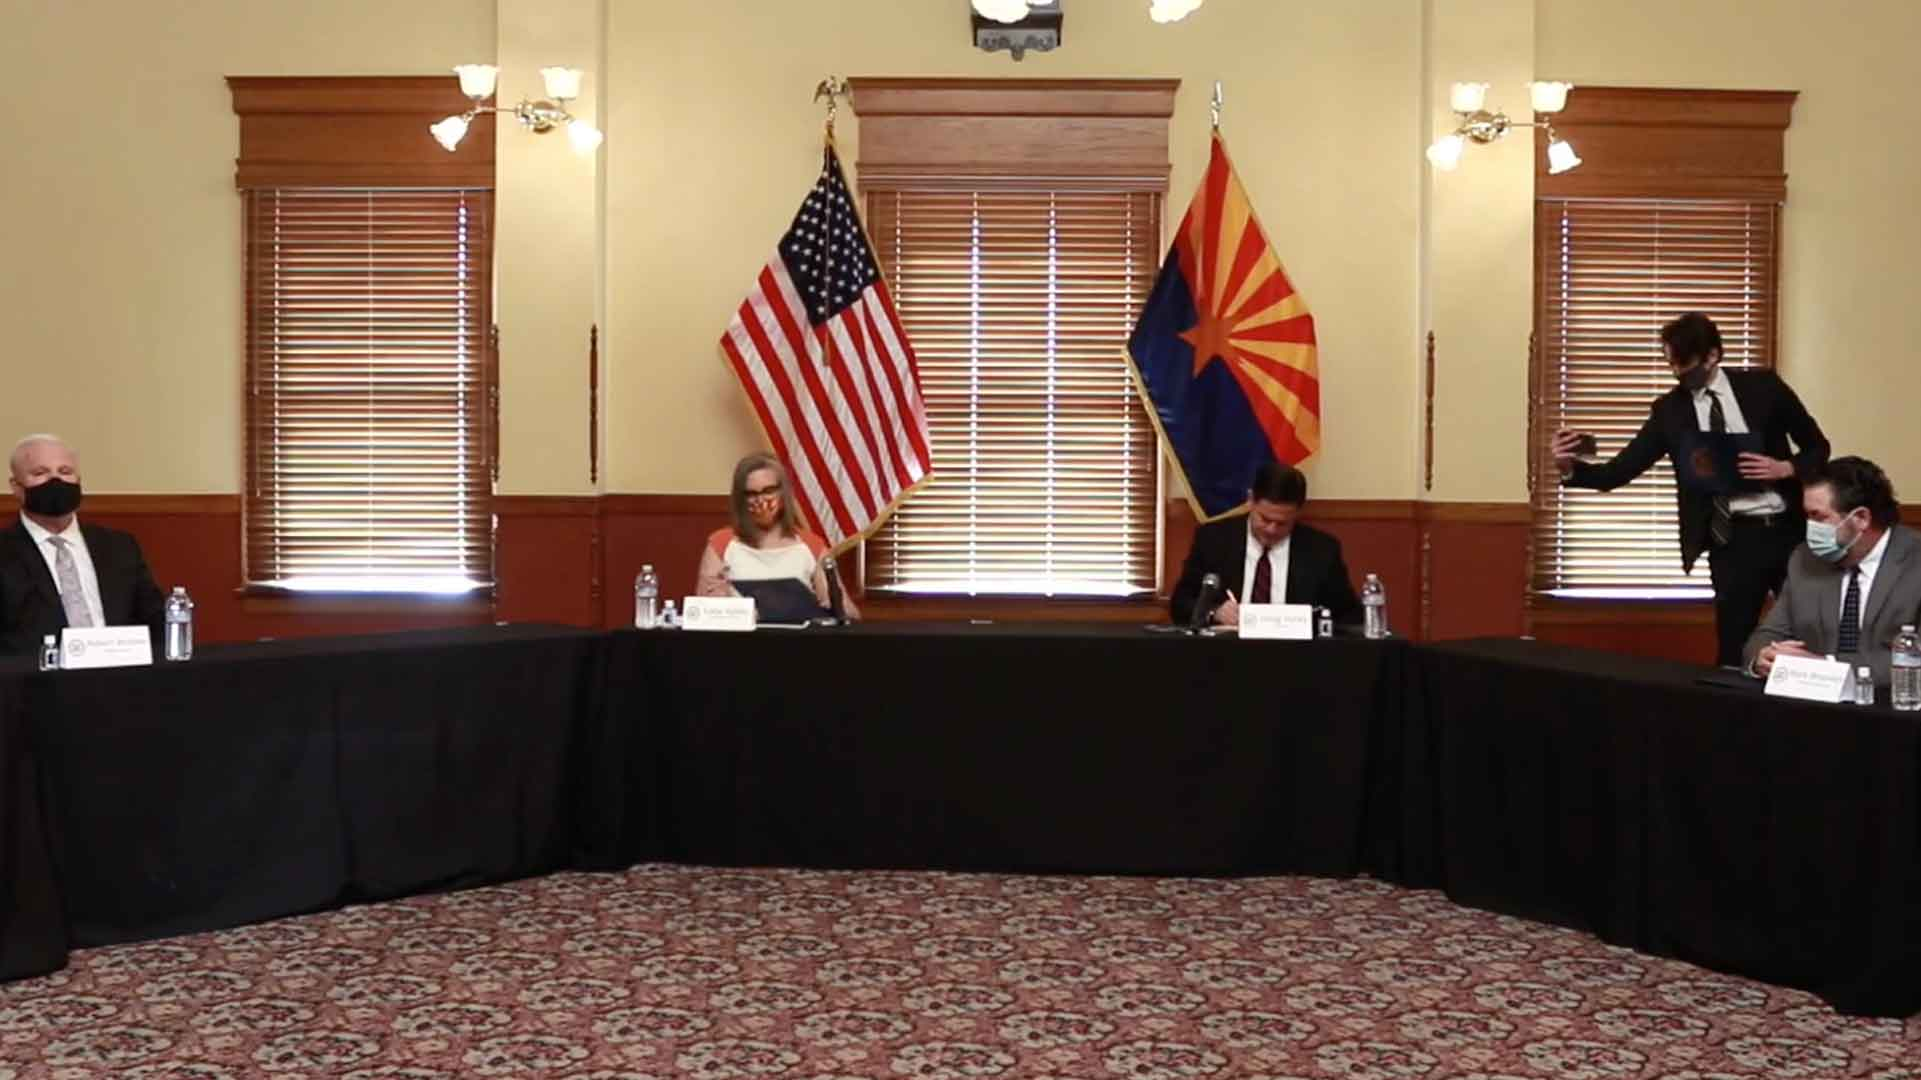 Arizona Chief Justice Robert Brutinel, Secretary of State Katie Hobbs, Governor Doug Ducey, and Attorney General Mark Brnovich certify the 2020 General Election. Nov. 30, 2020